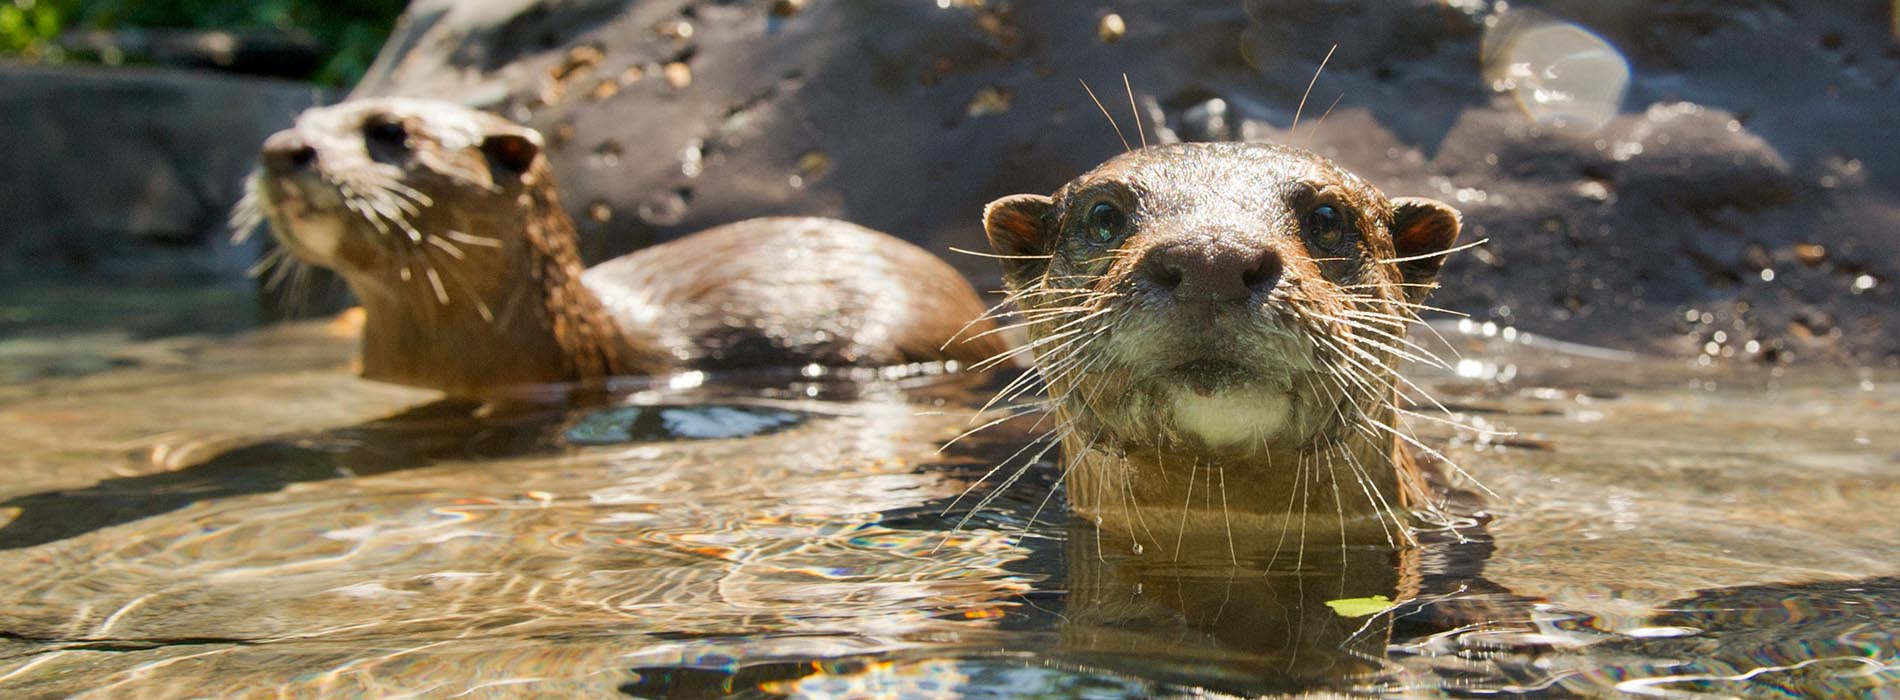 Two otters play in water